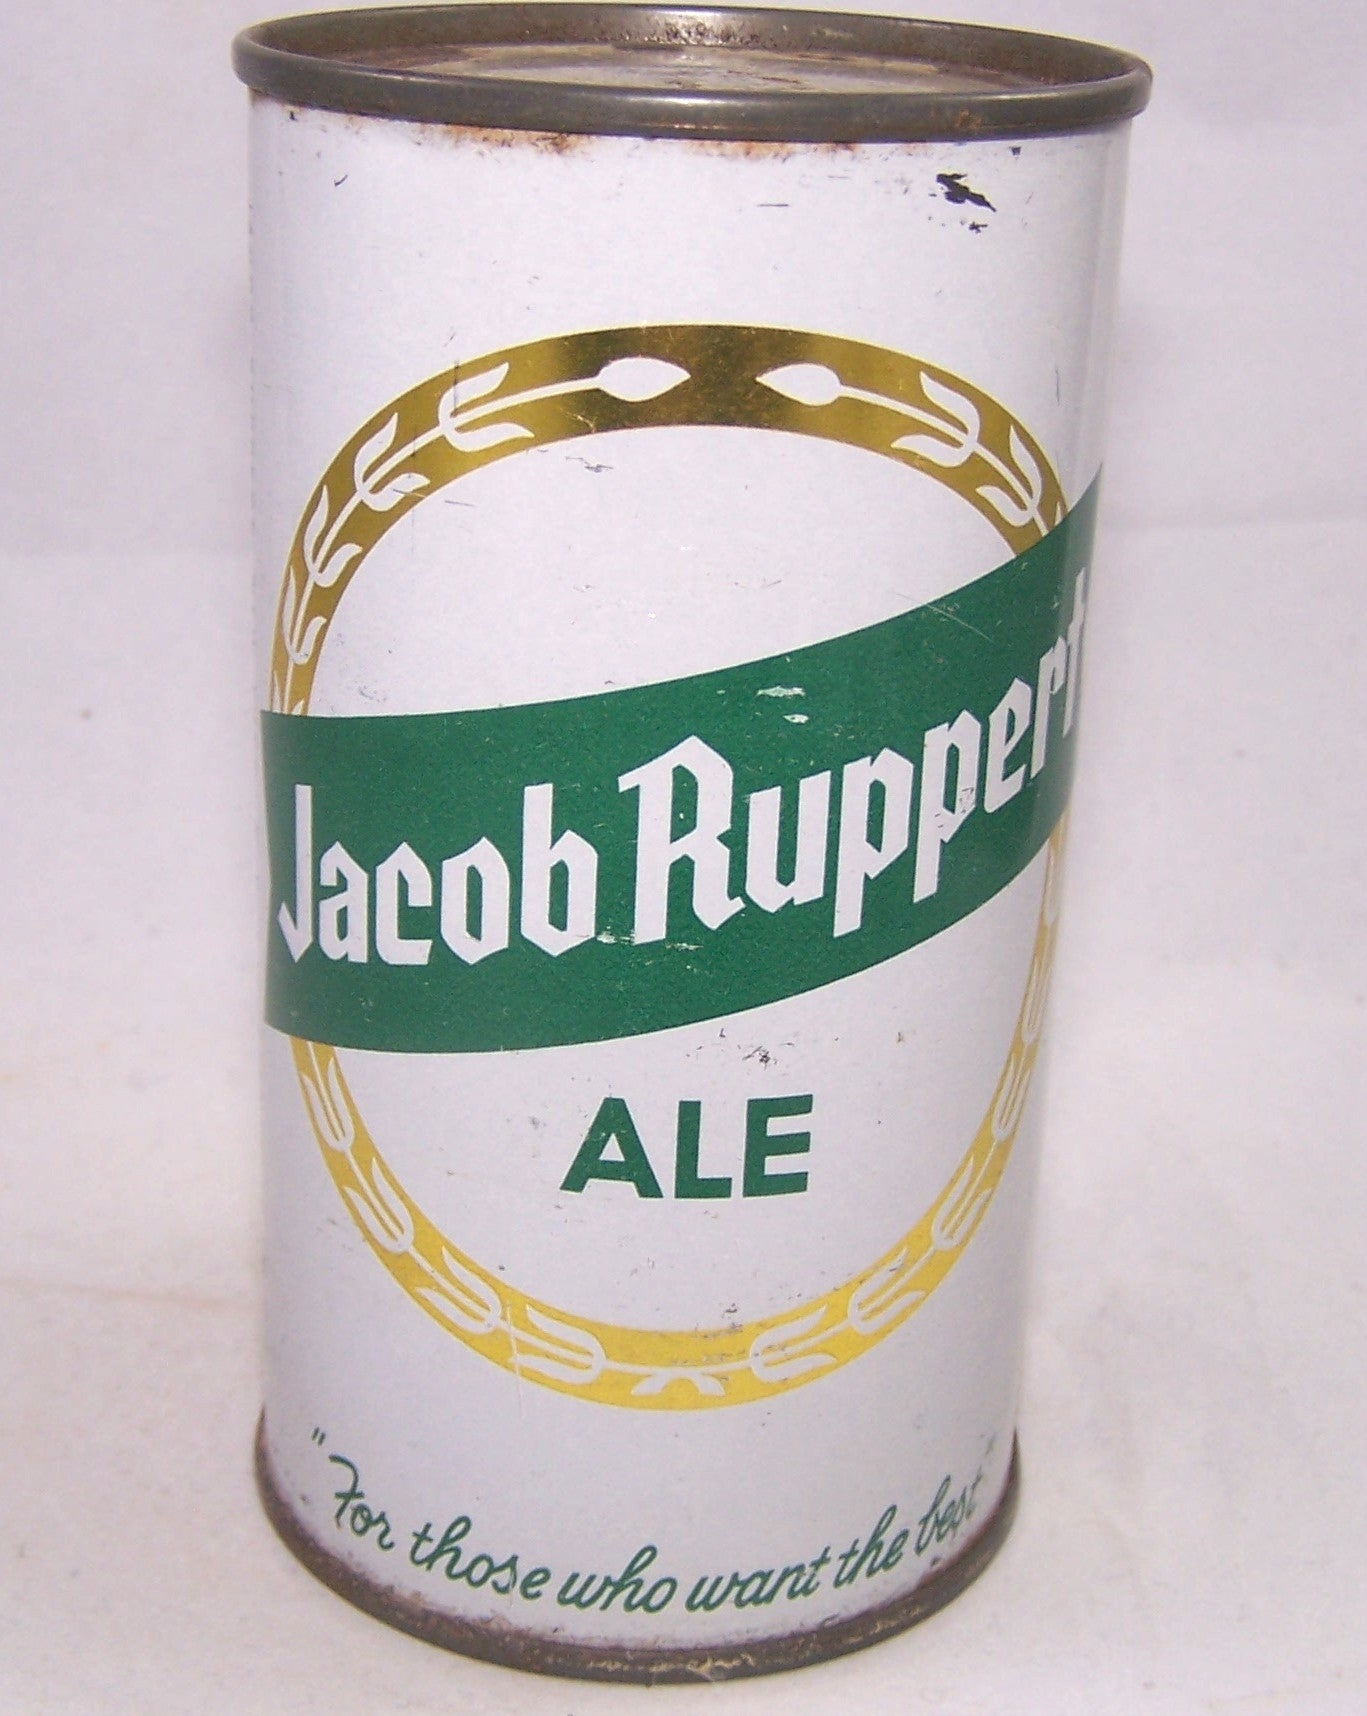 Jacob Ruppert Ale, USBC 125-38, Grade 1/1- Sold on 11/27/19